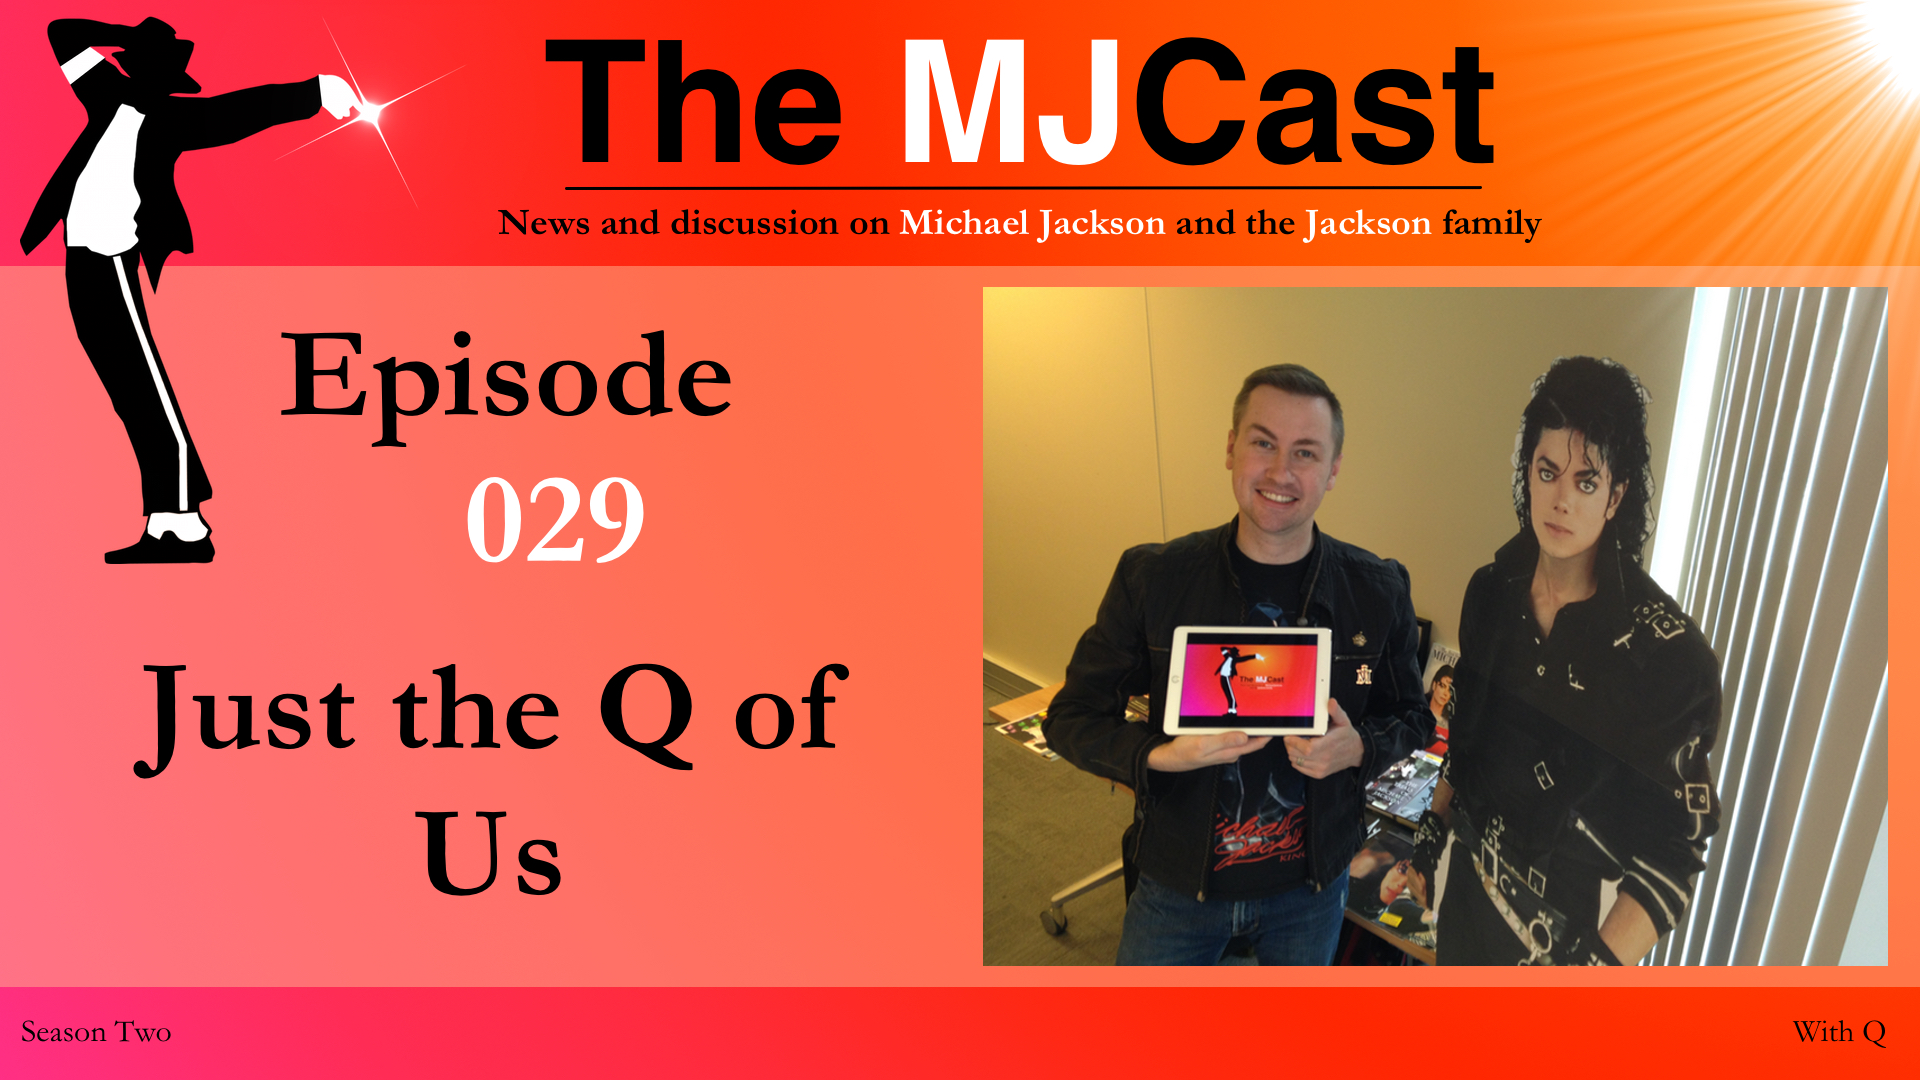 Episode 029 - Just the Q of Us YouTube Art